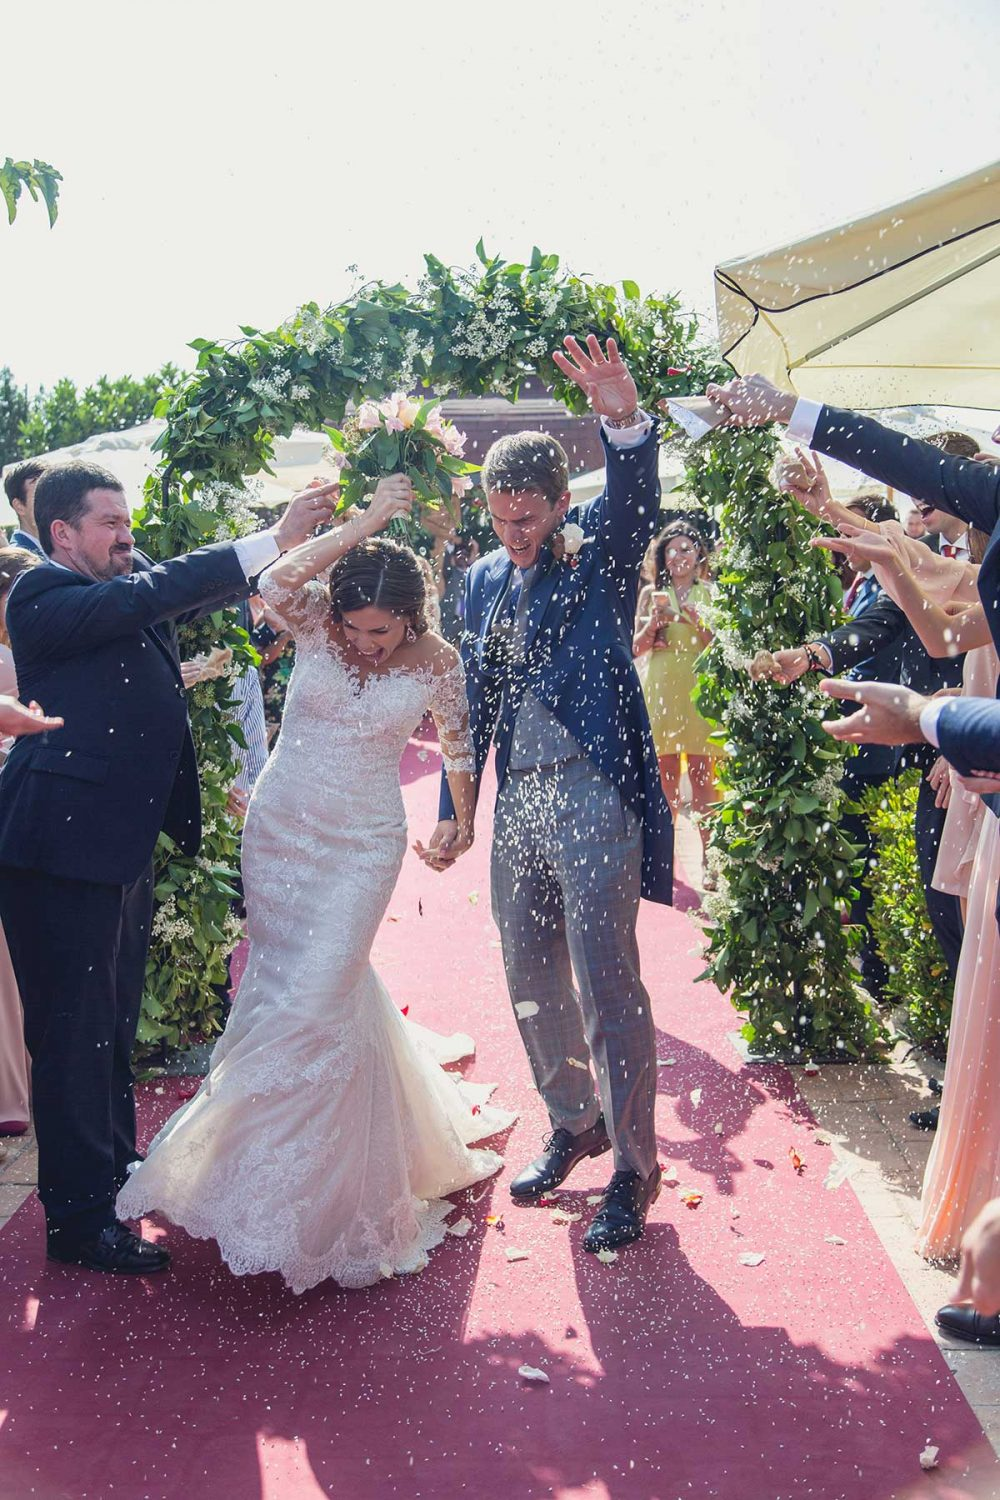 wedding guest throwing rice at the newly weds